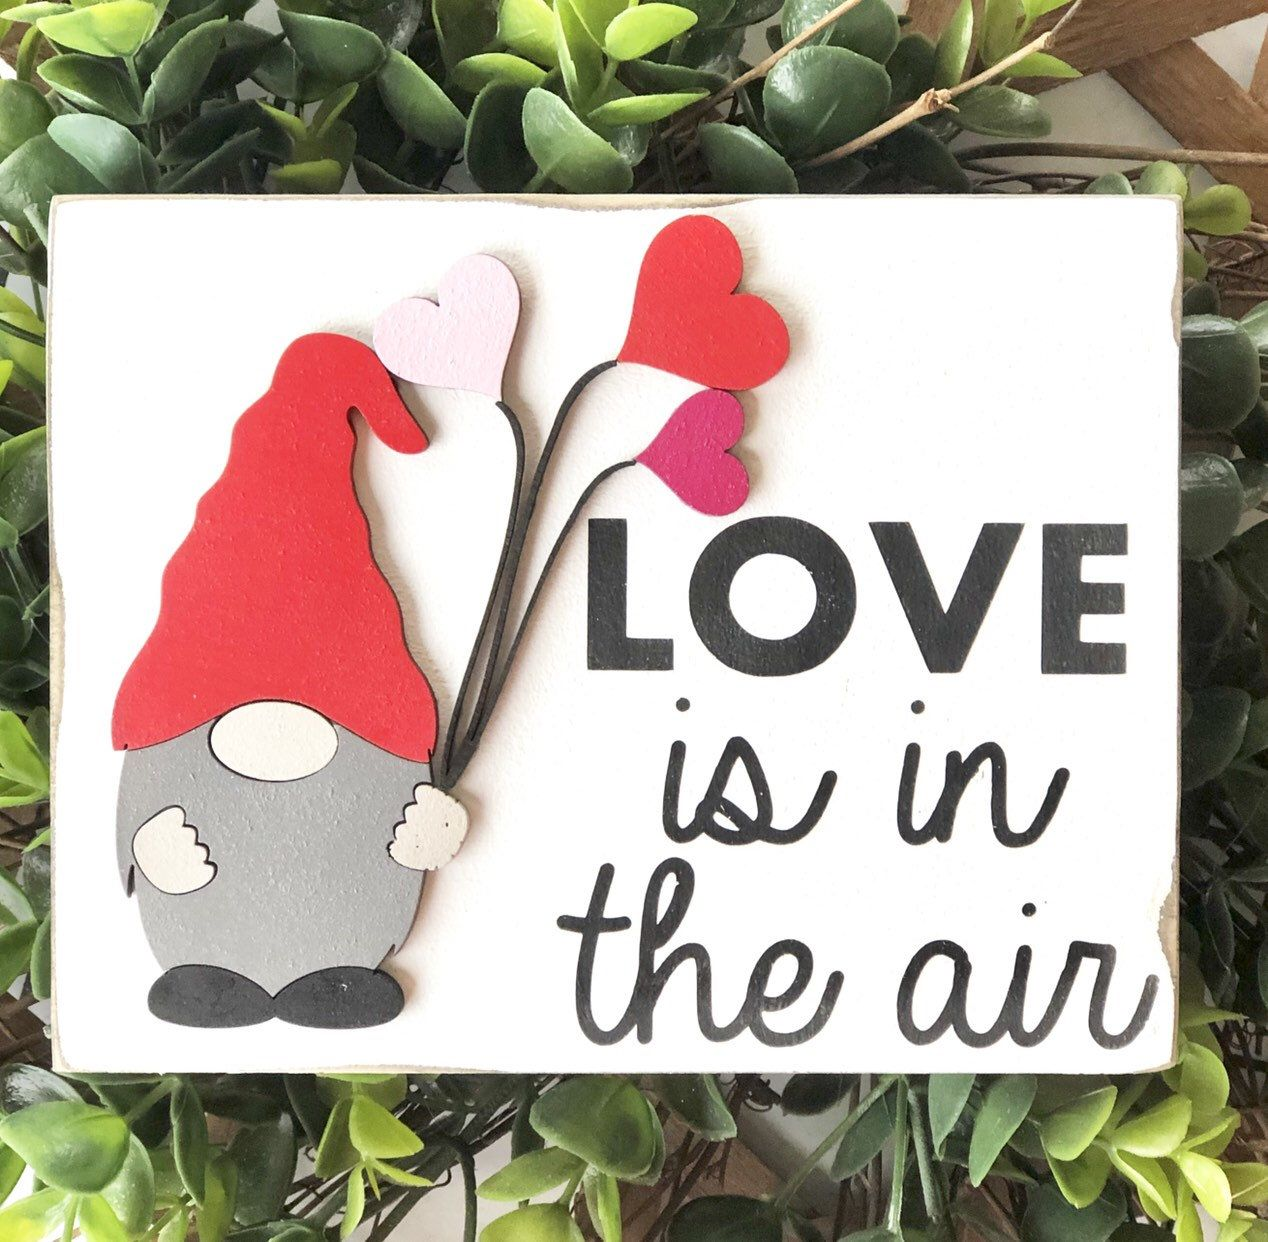 Tiered tray gnome valentine's 3D wood sign | tier tray decor #tieredtraydecor